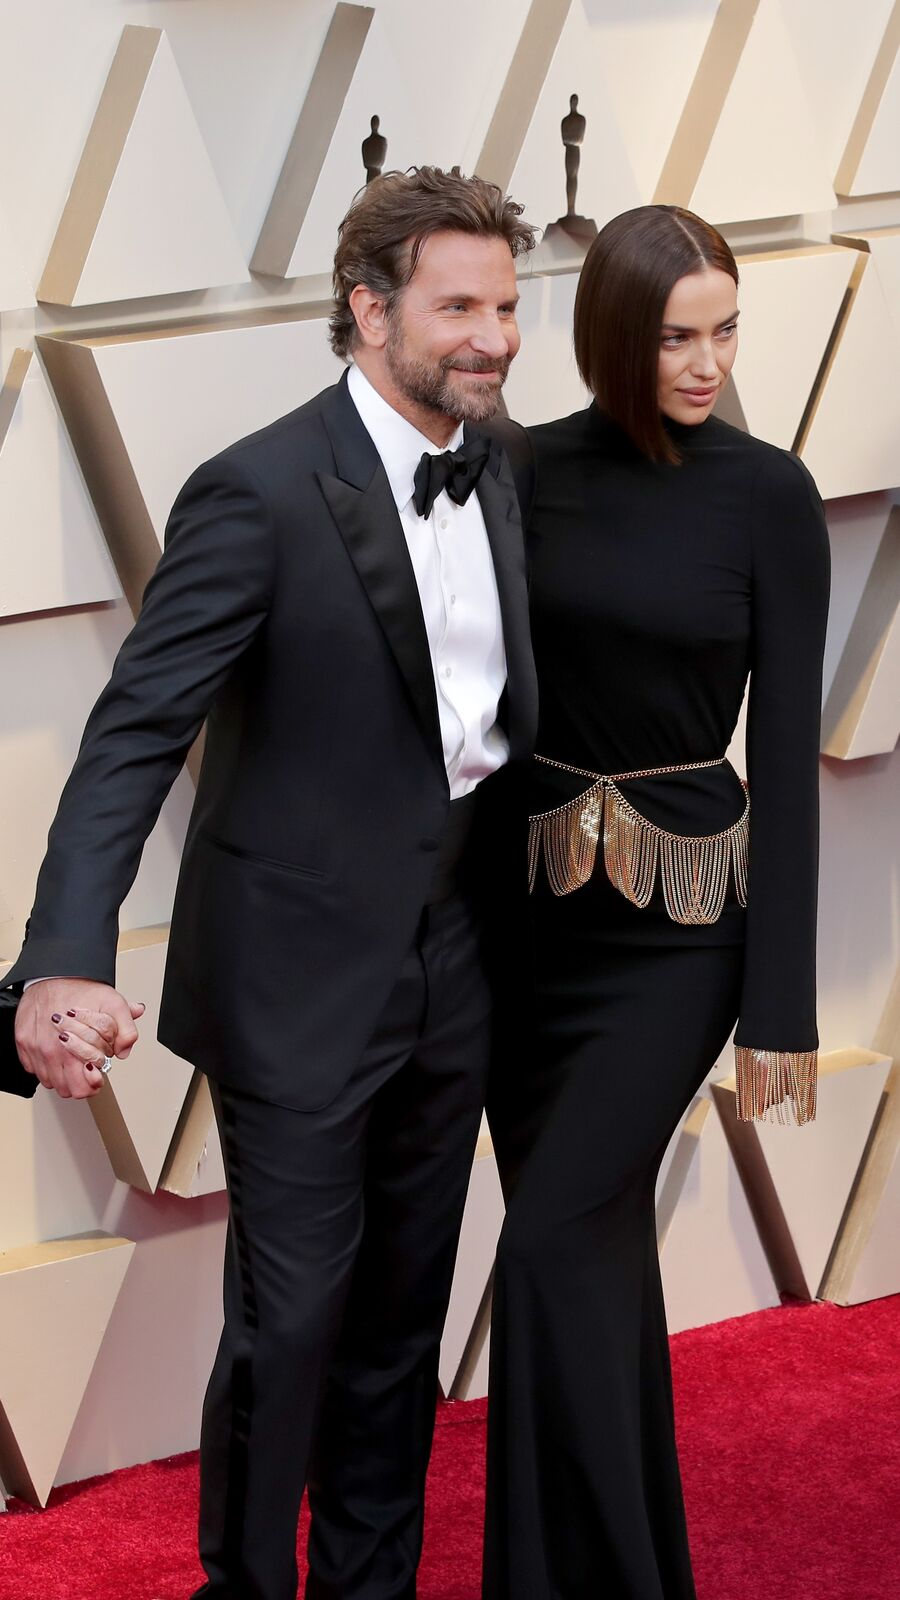 Bradley Cooper and Irina Shayk on February 24, 2019 in Hollywood, California | Photo: Getty Images